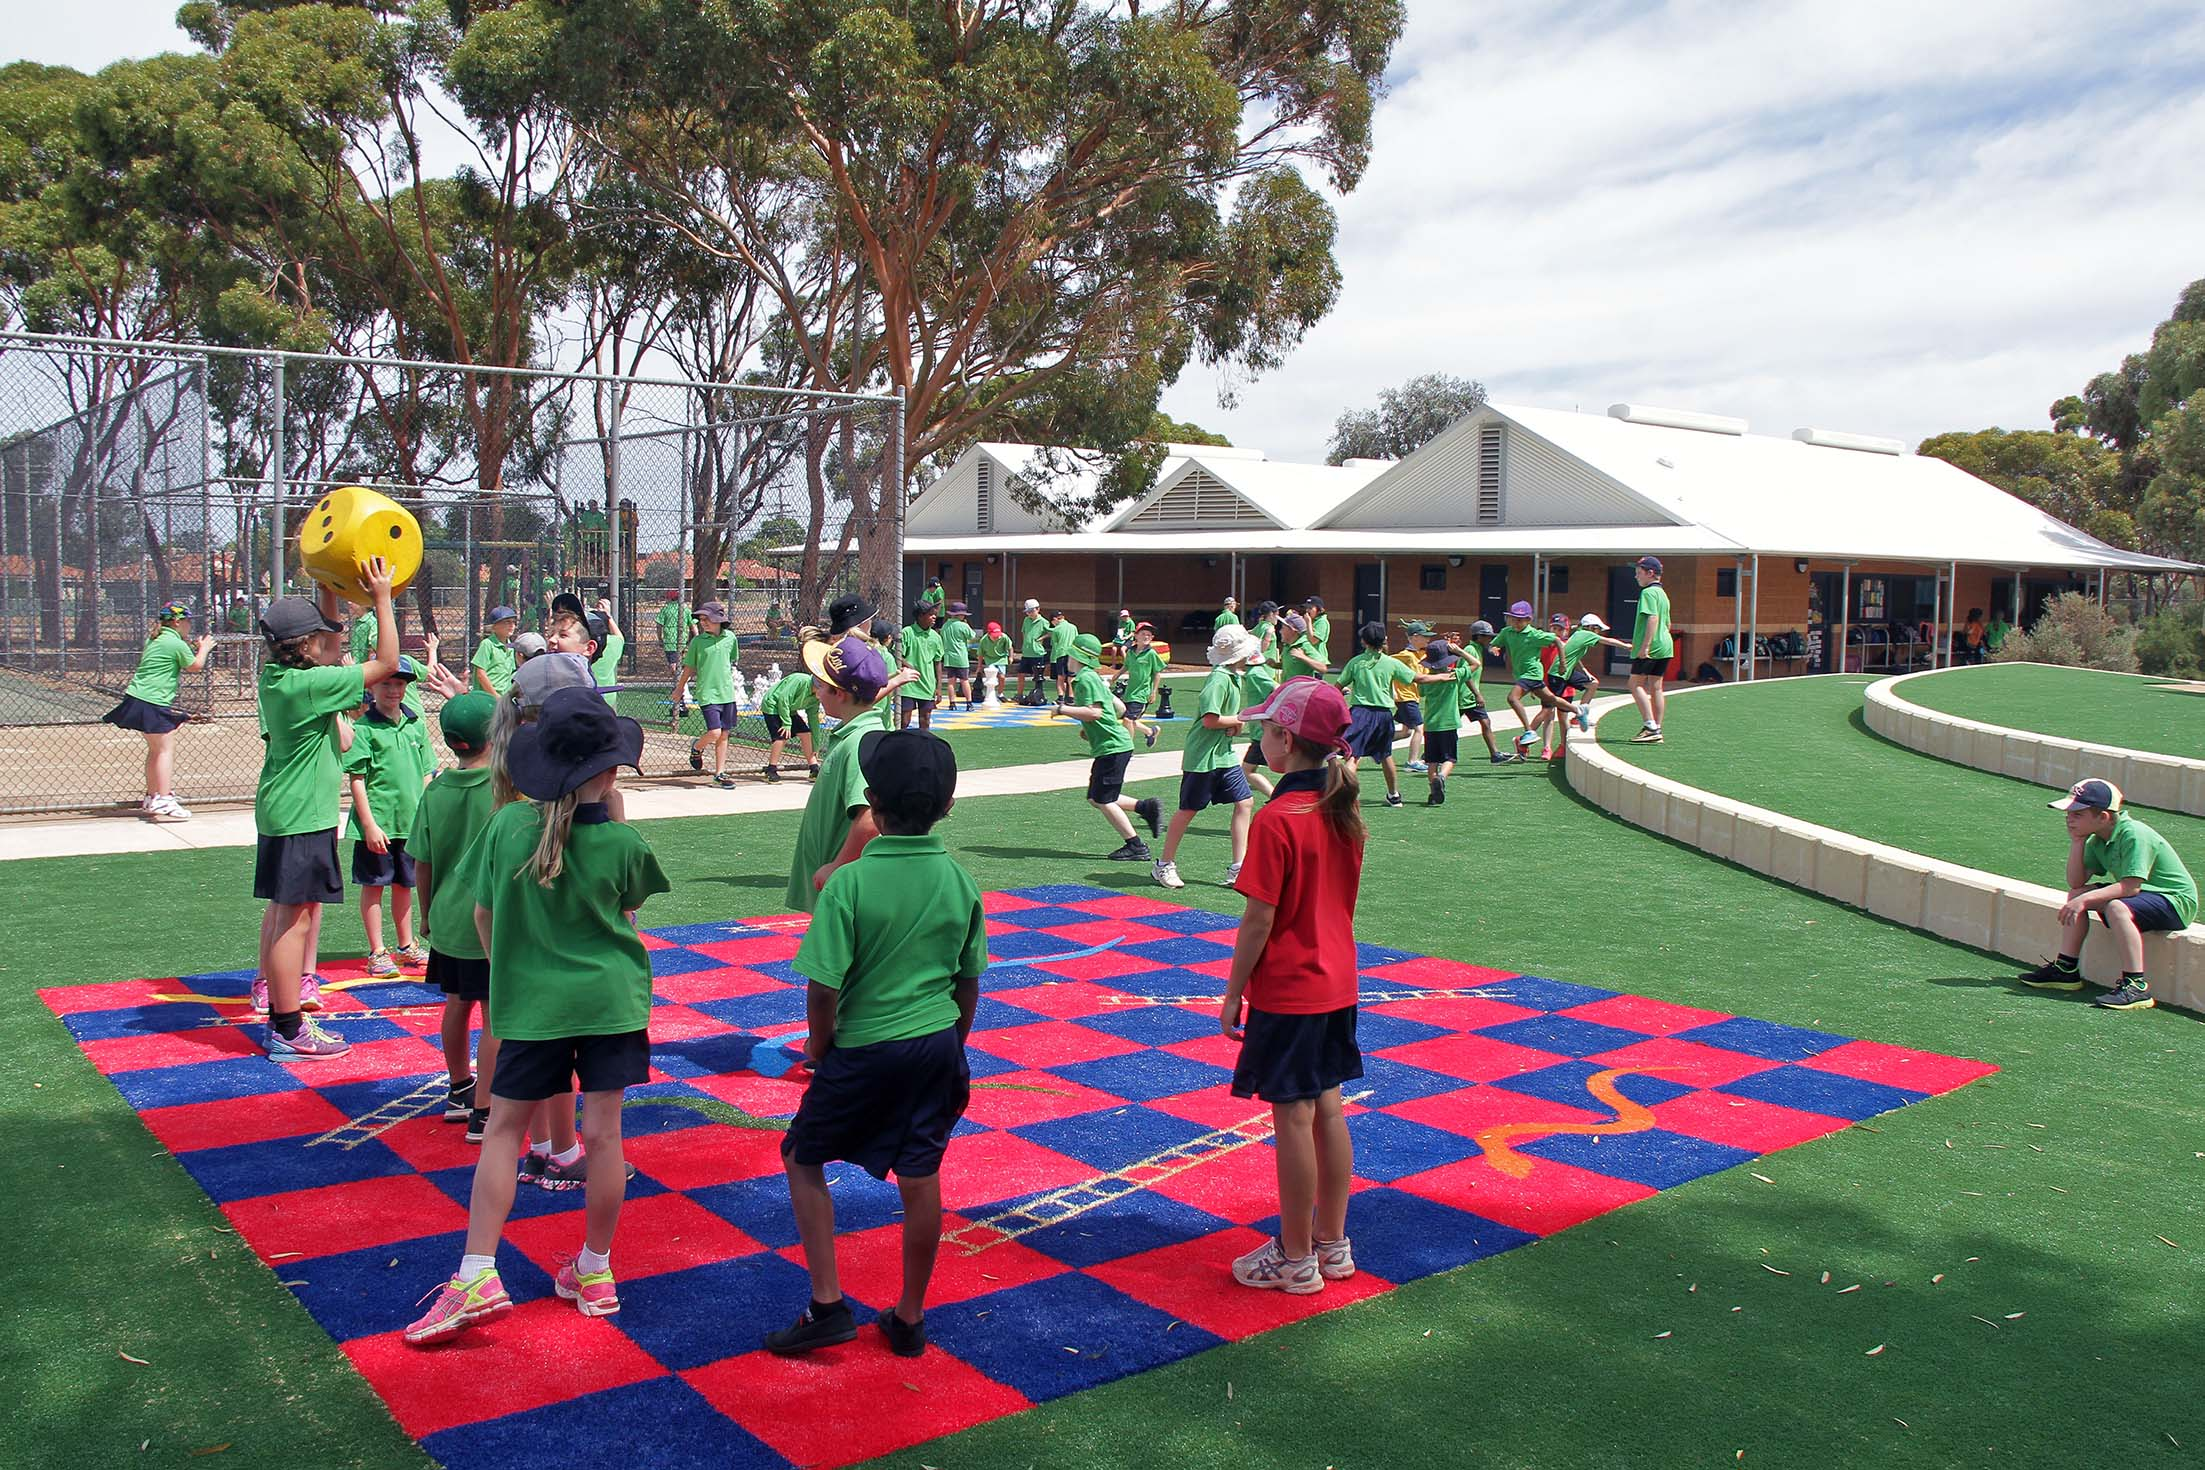 Christopher Hicks, Kalgoorlie-Boulder, Synthetic Turf pitctured at Hannans Primary School.